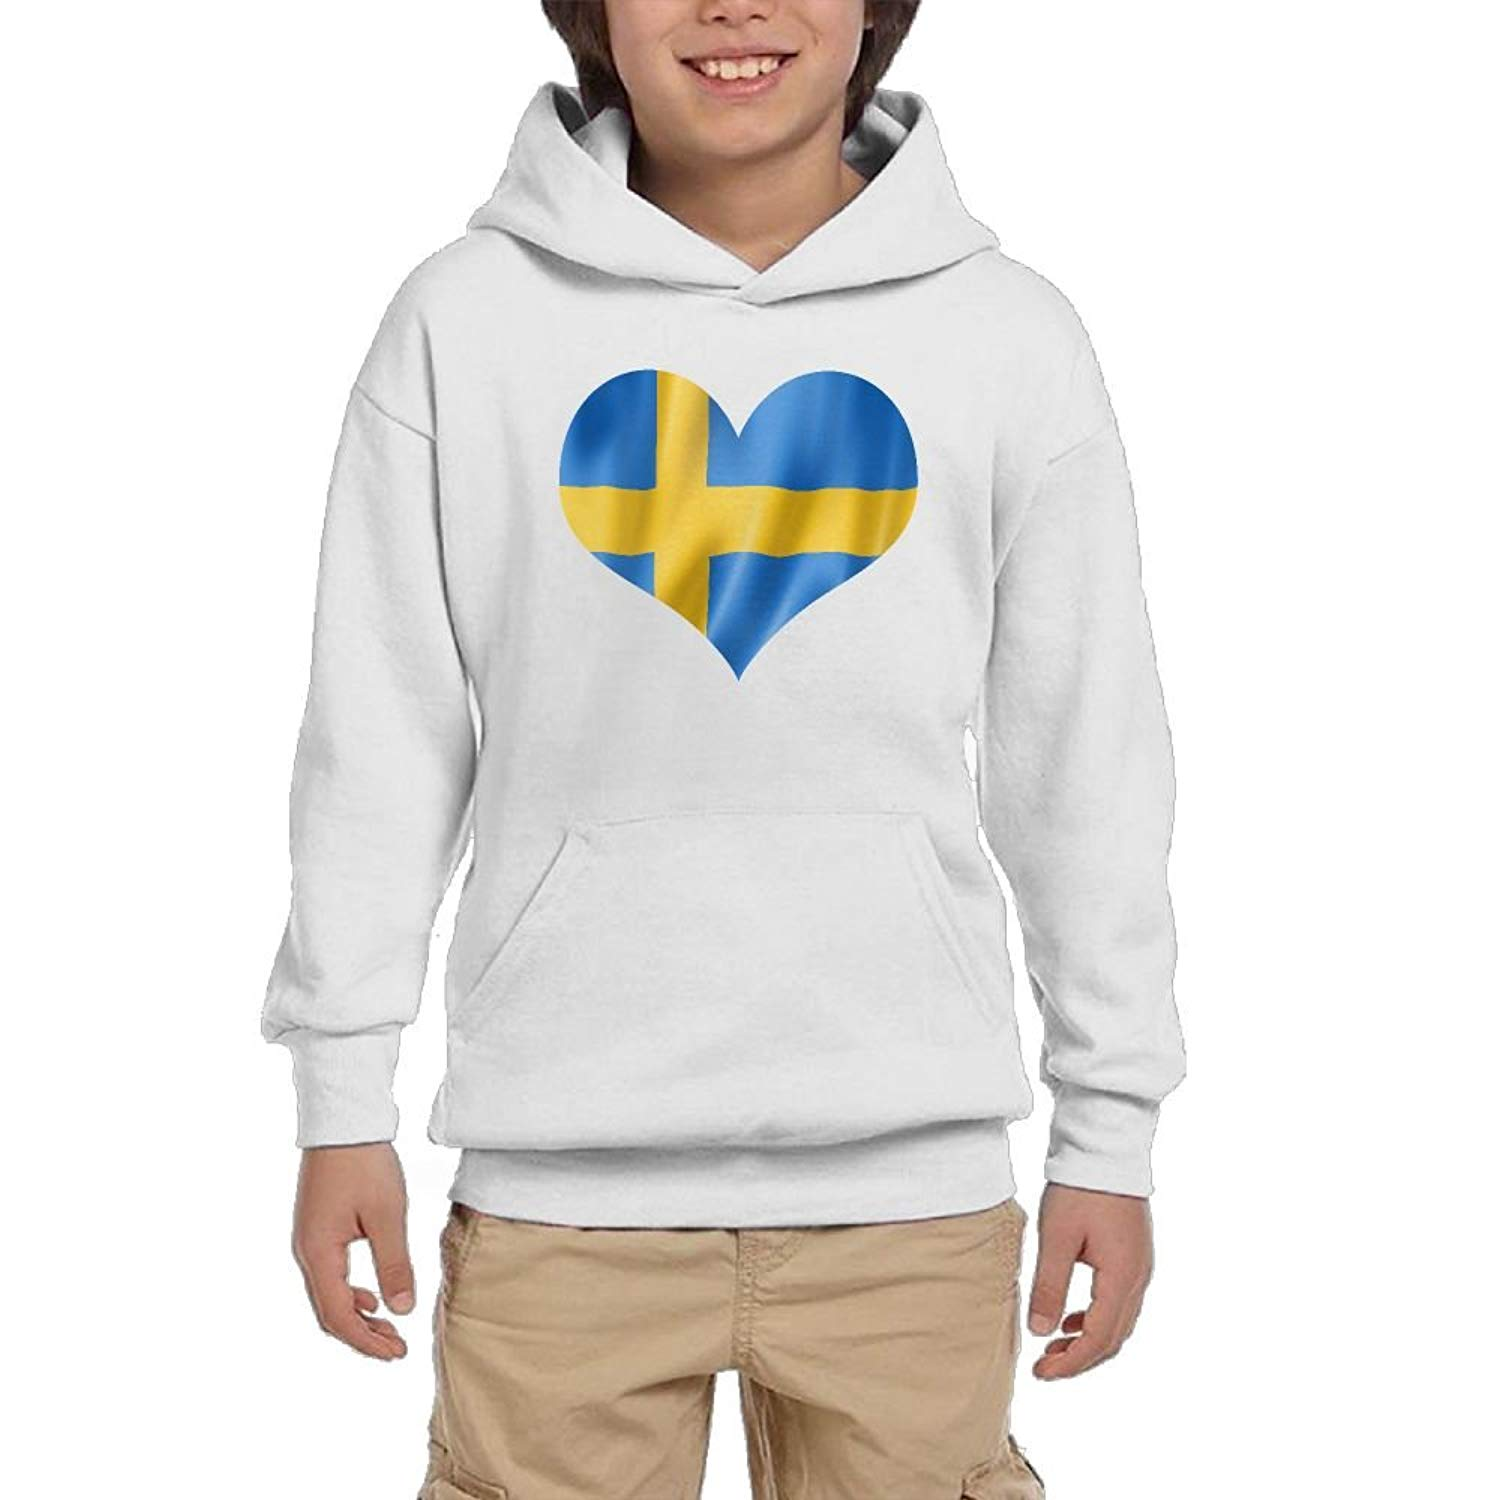 FavoryStore Swedish Girls Are Sunshine Mixed With a Little Hurricane Shirt Hoodie